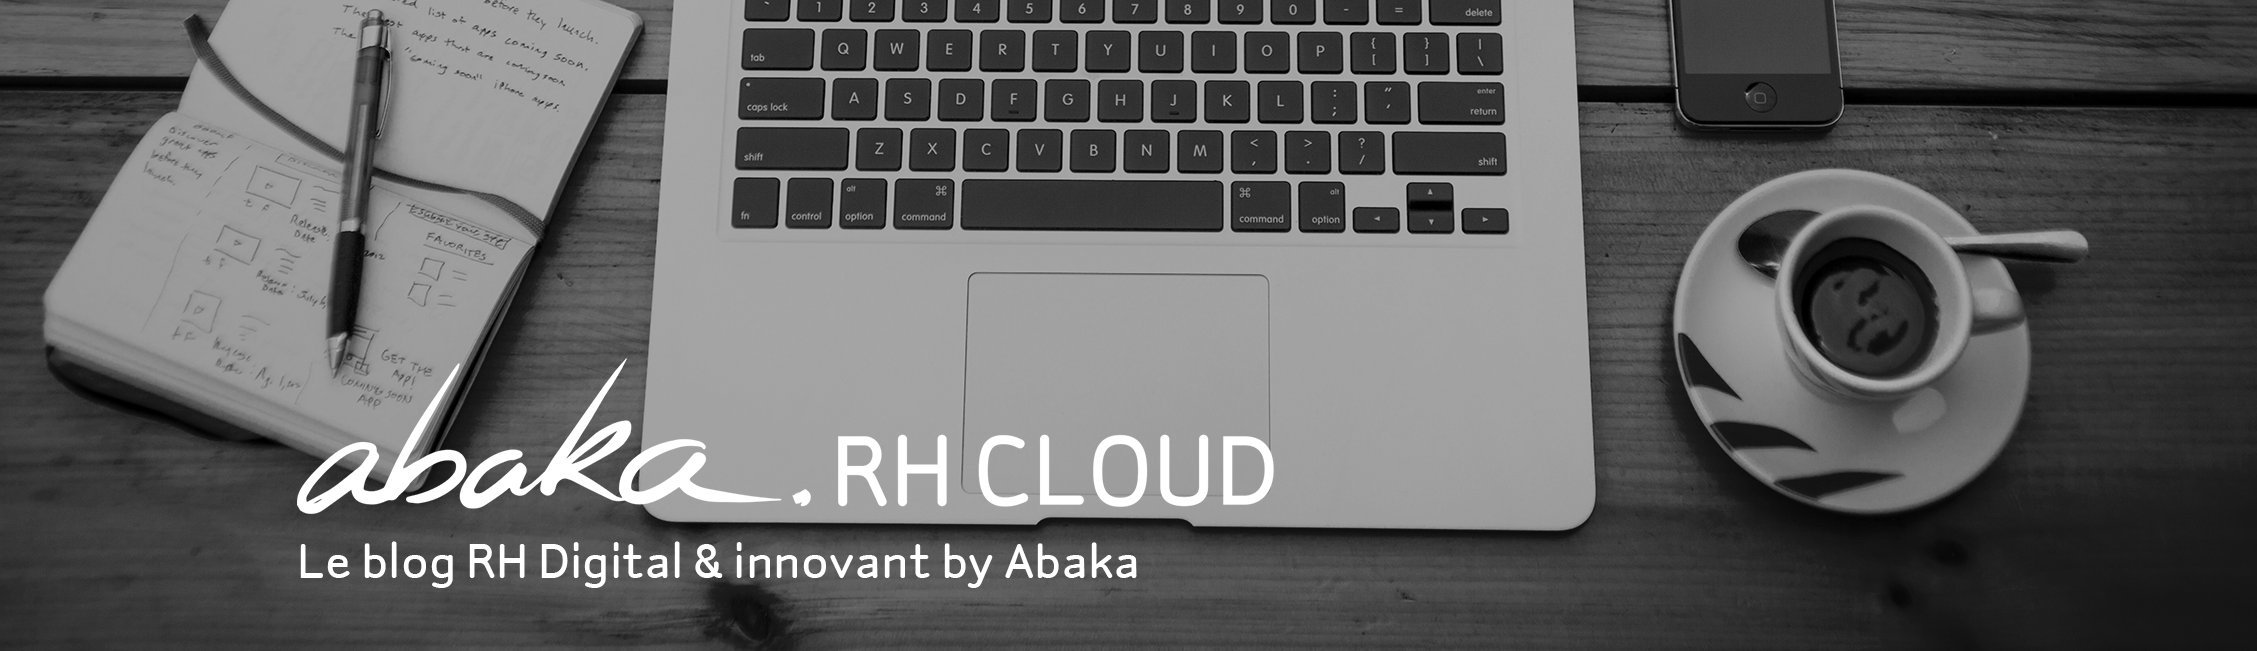 Abaka RH Cloud